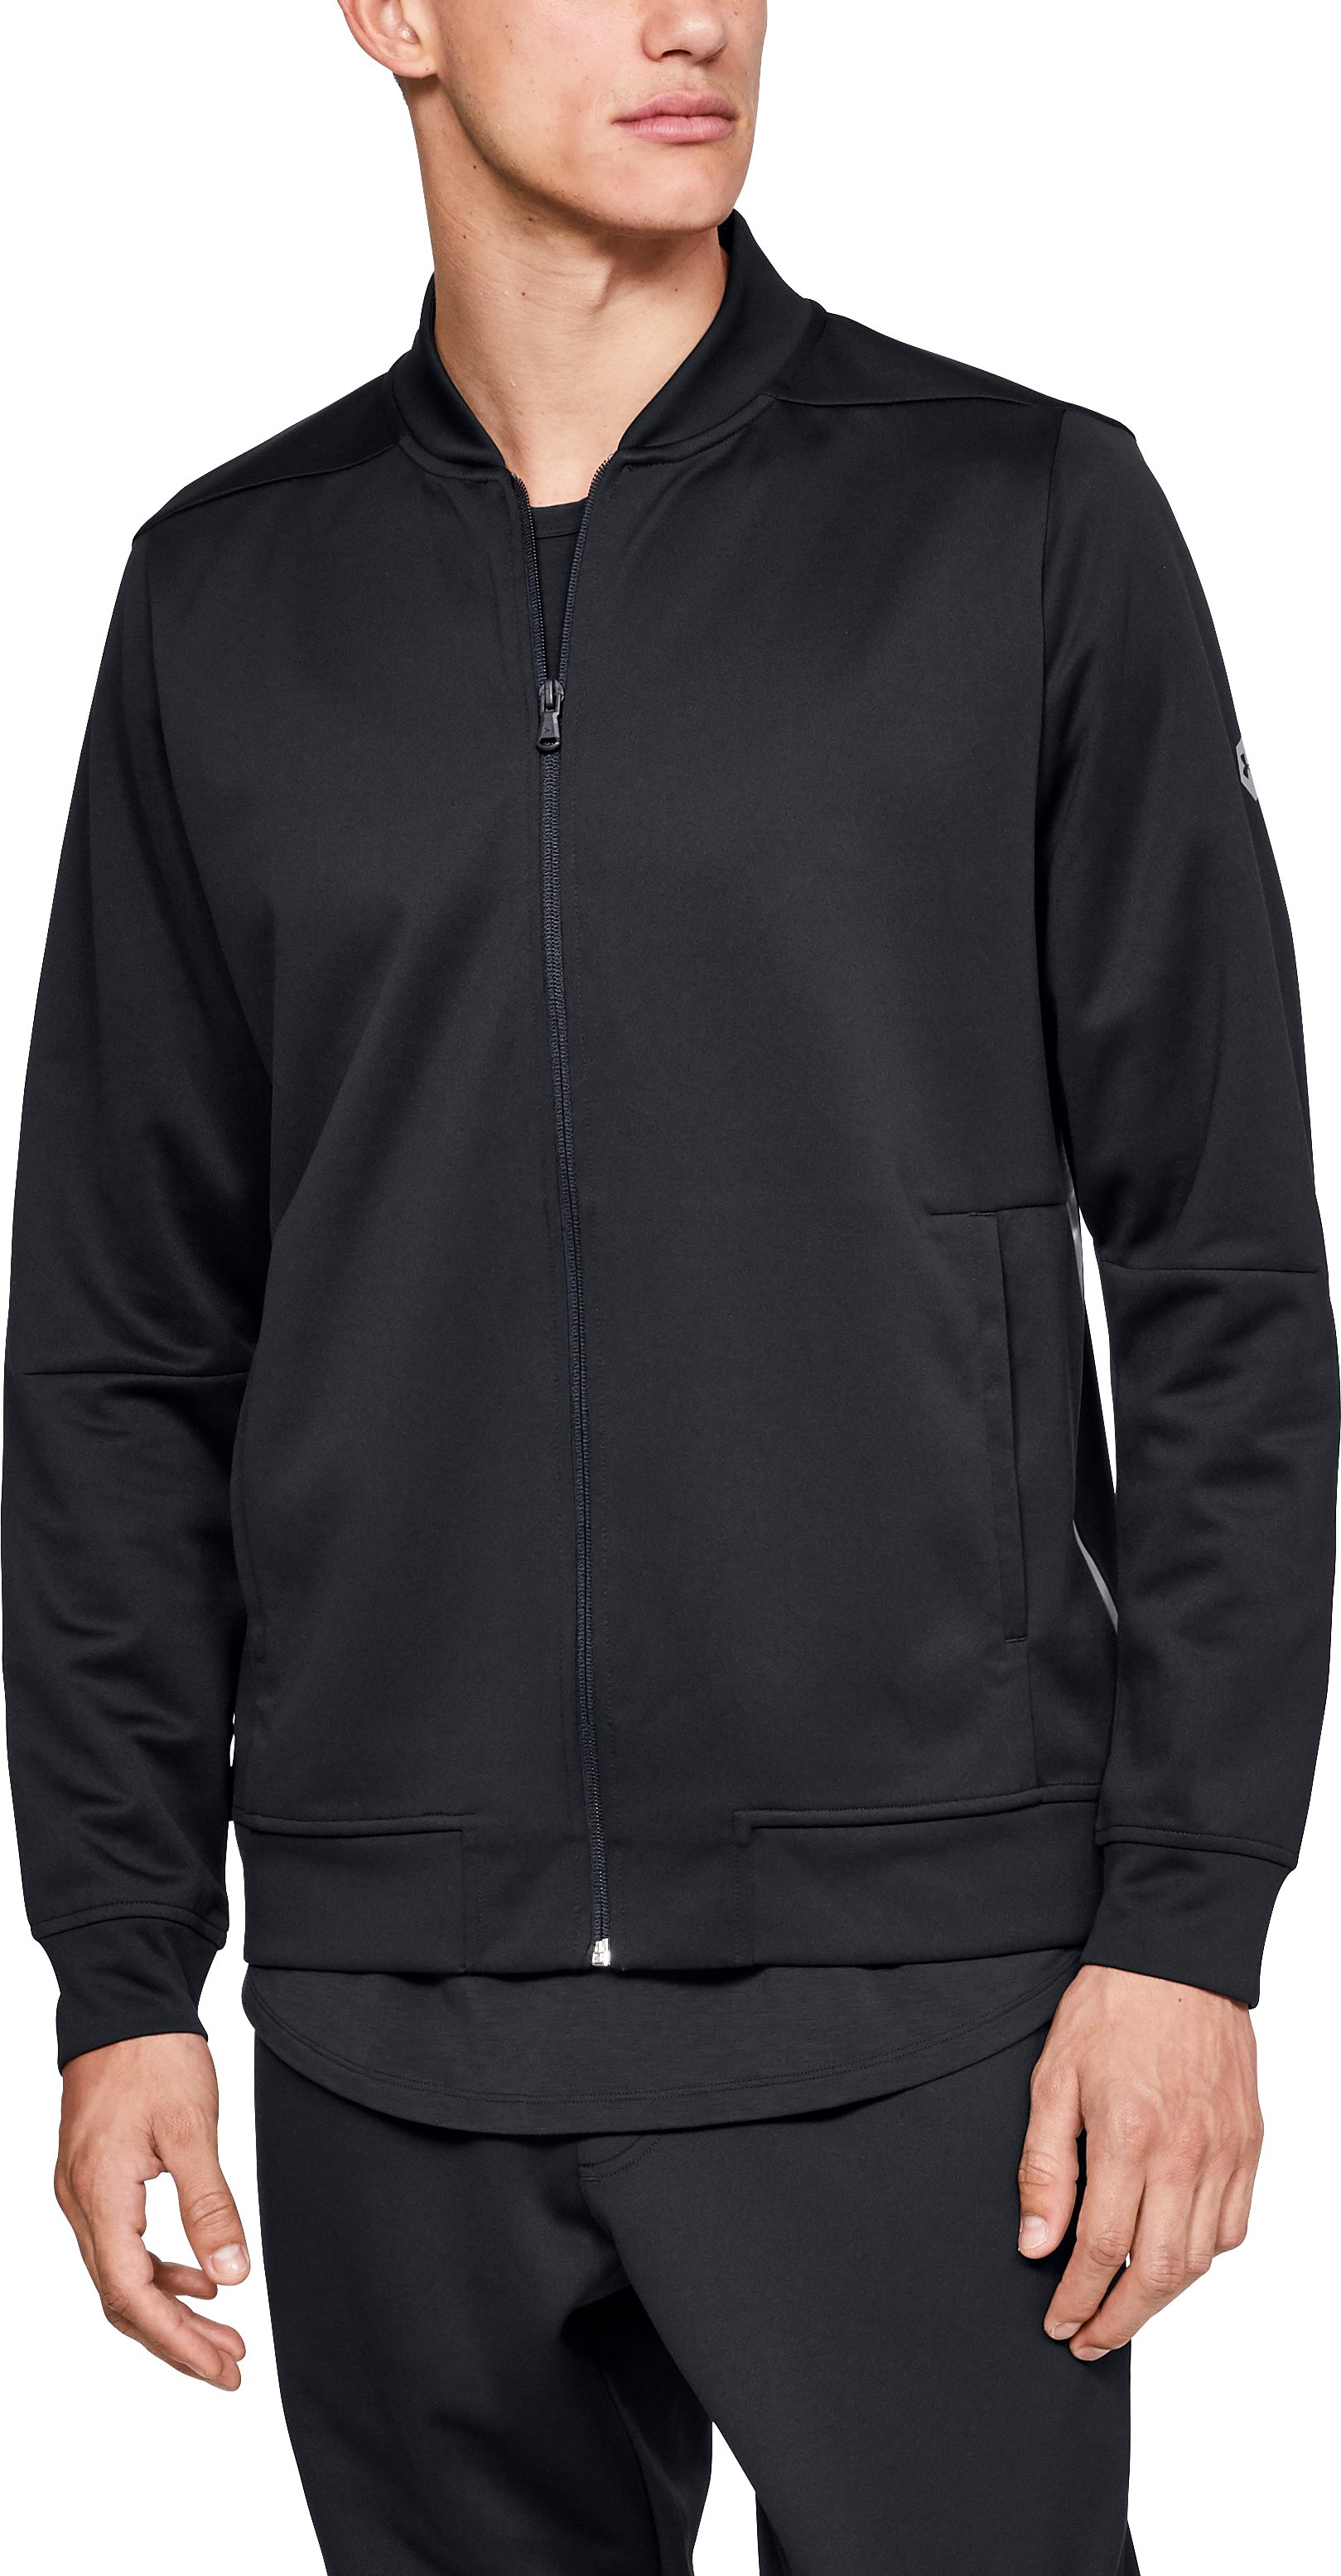 Men's Athlete Recovery Track Suit™ Jacket, Black , zoomed